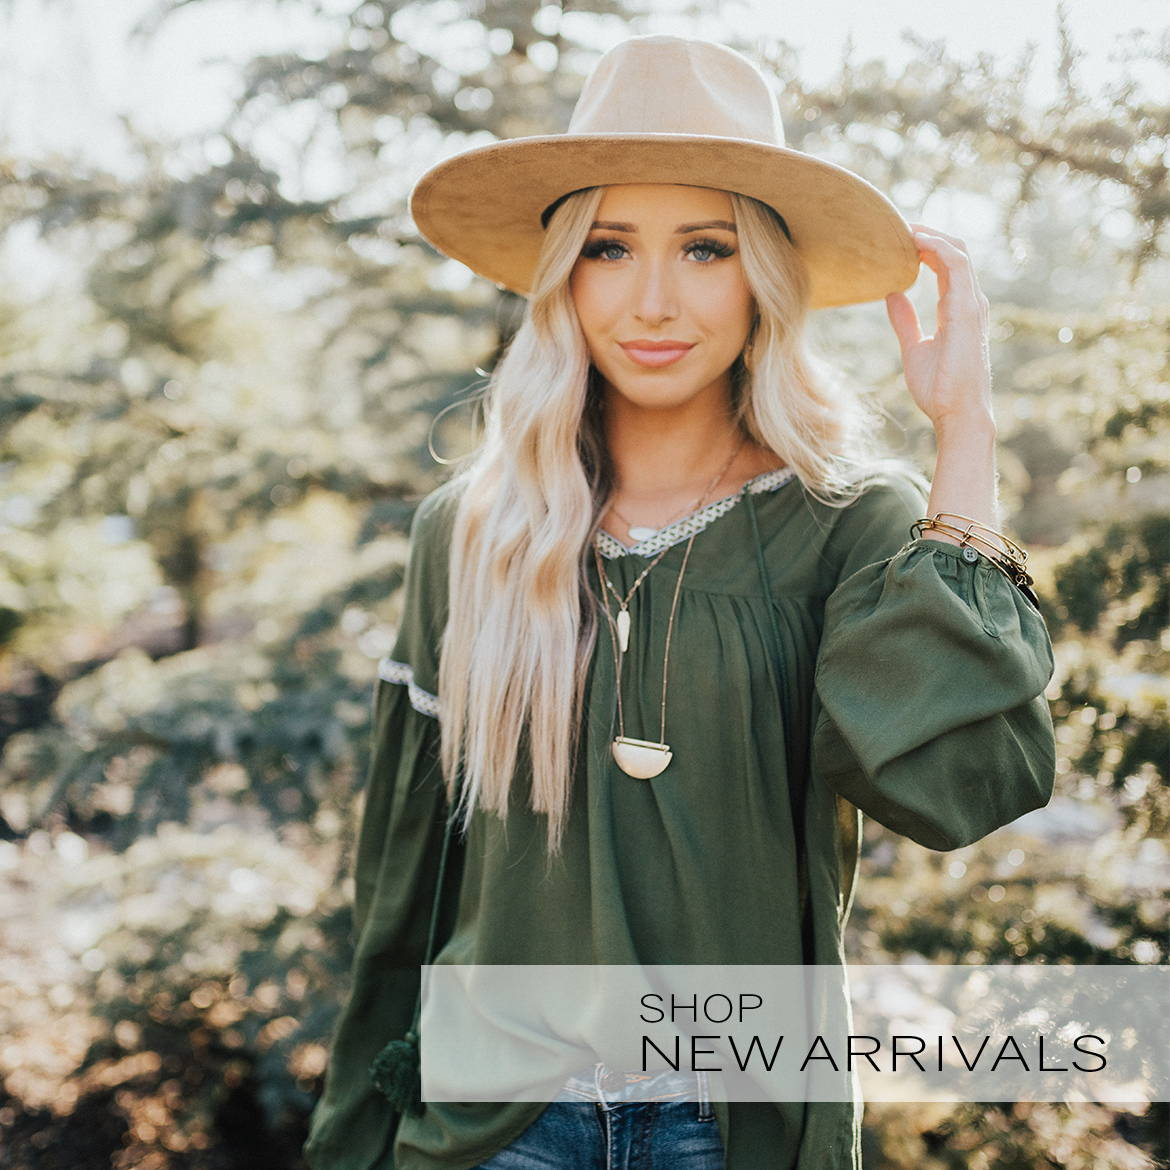 shop new arrivals, boutique new arrivals, online boutique